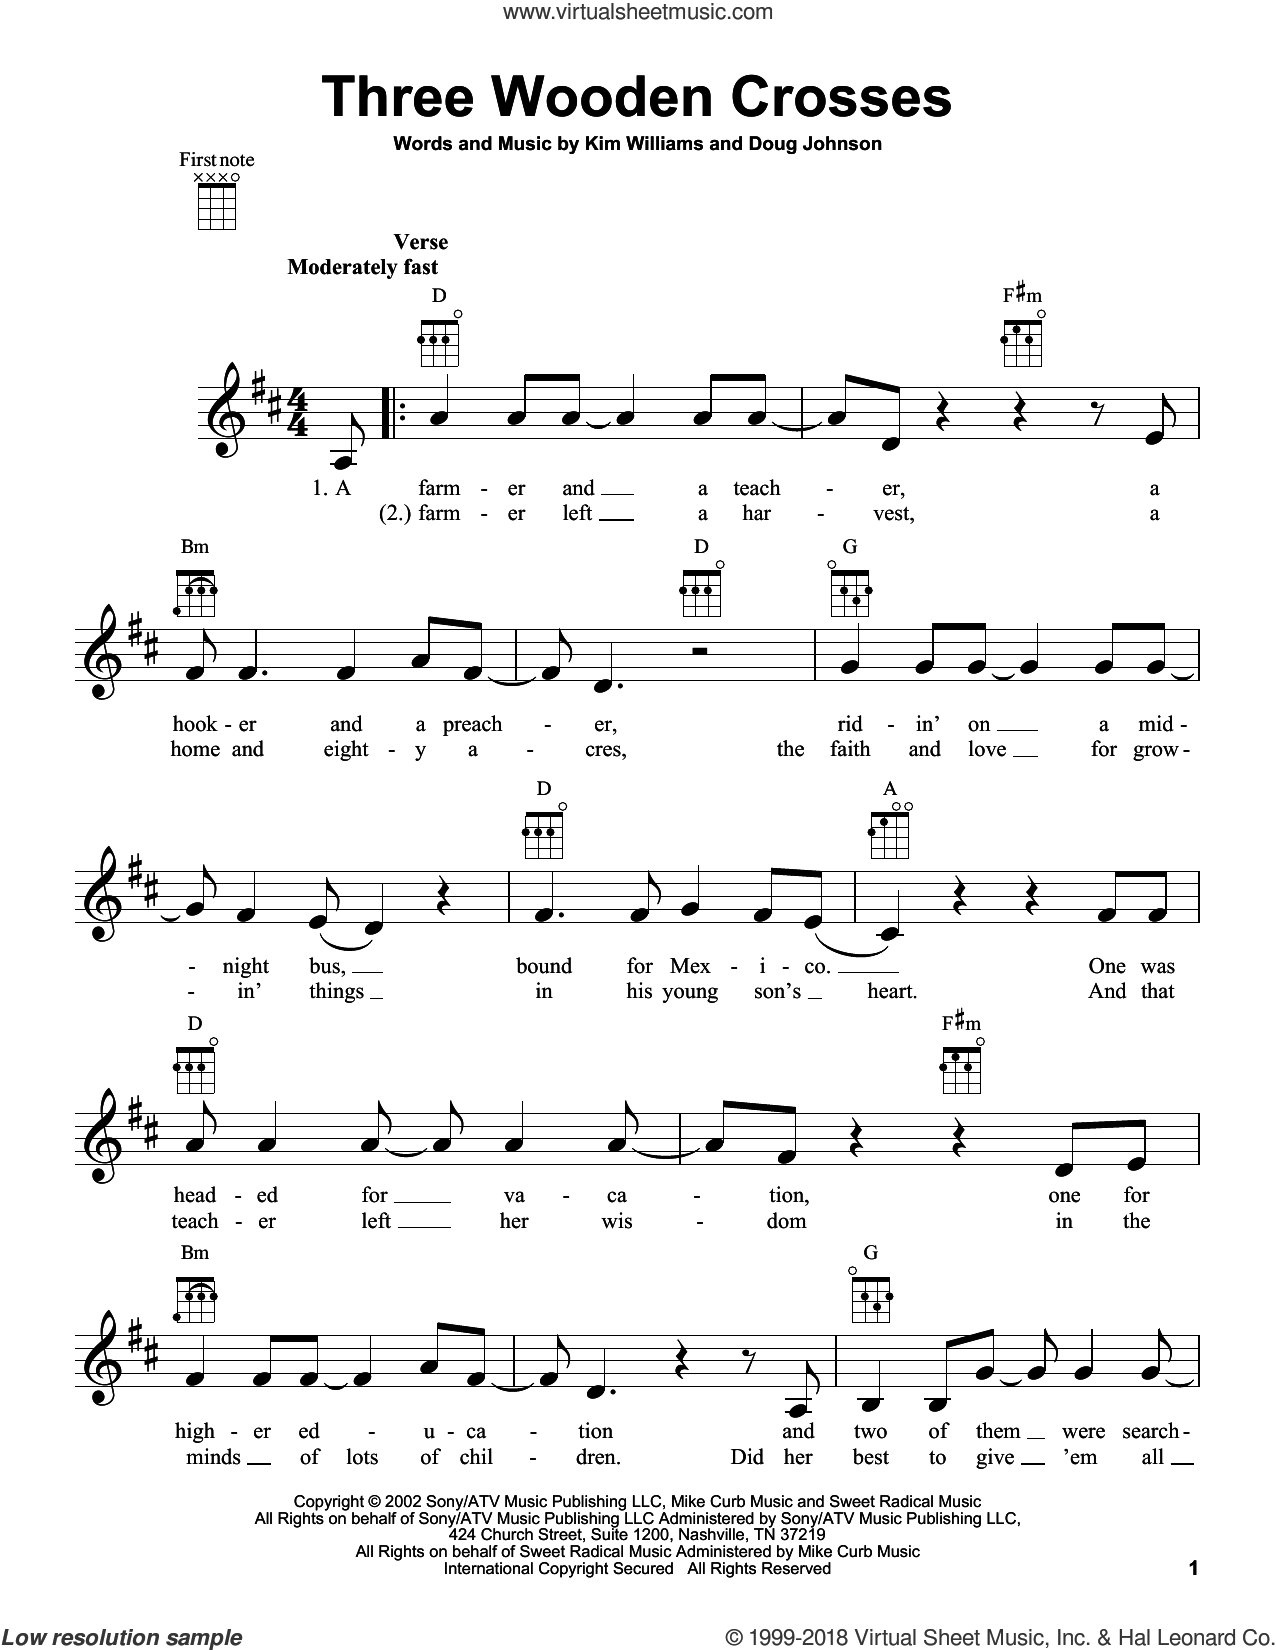 Three Wooden Crosses sheet music for ukulele by Randy Travis, Doug Johnson and Kim Williams, intermediate skill level